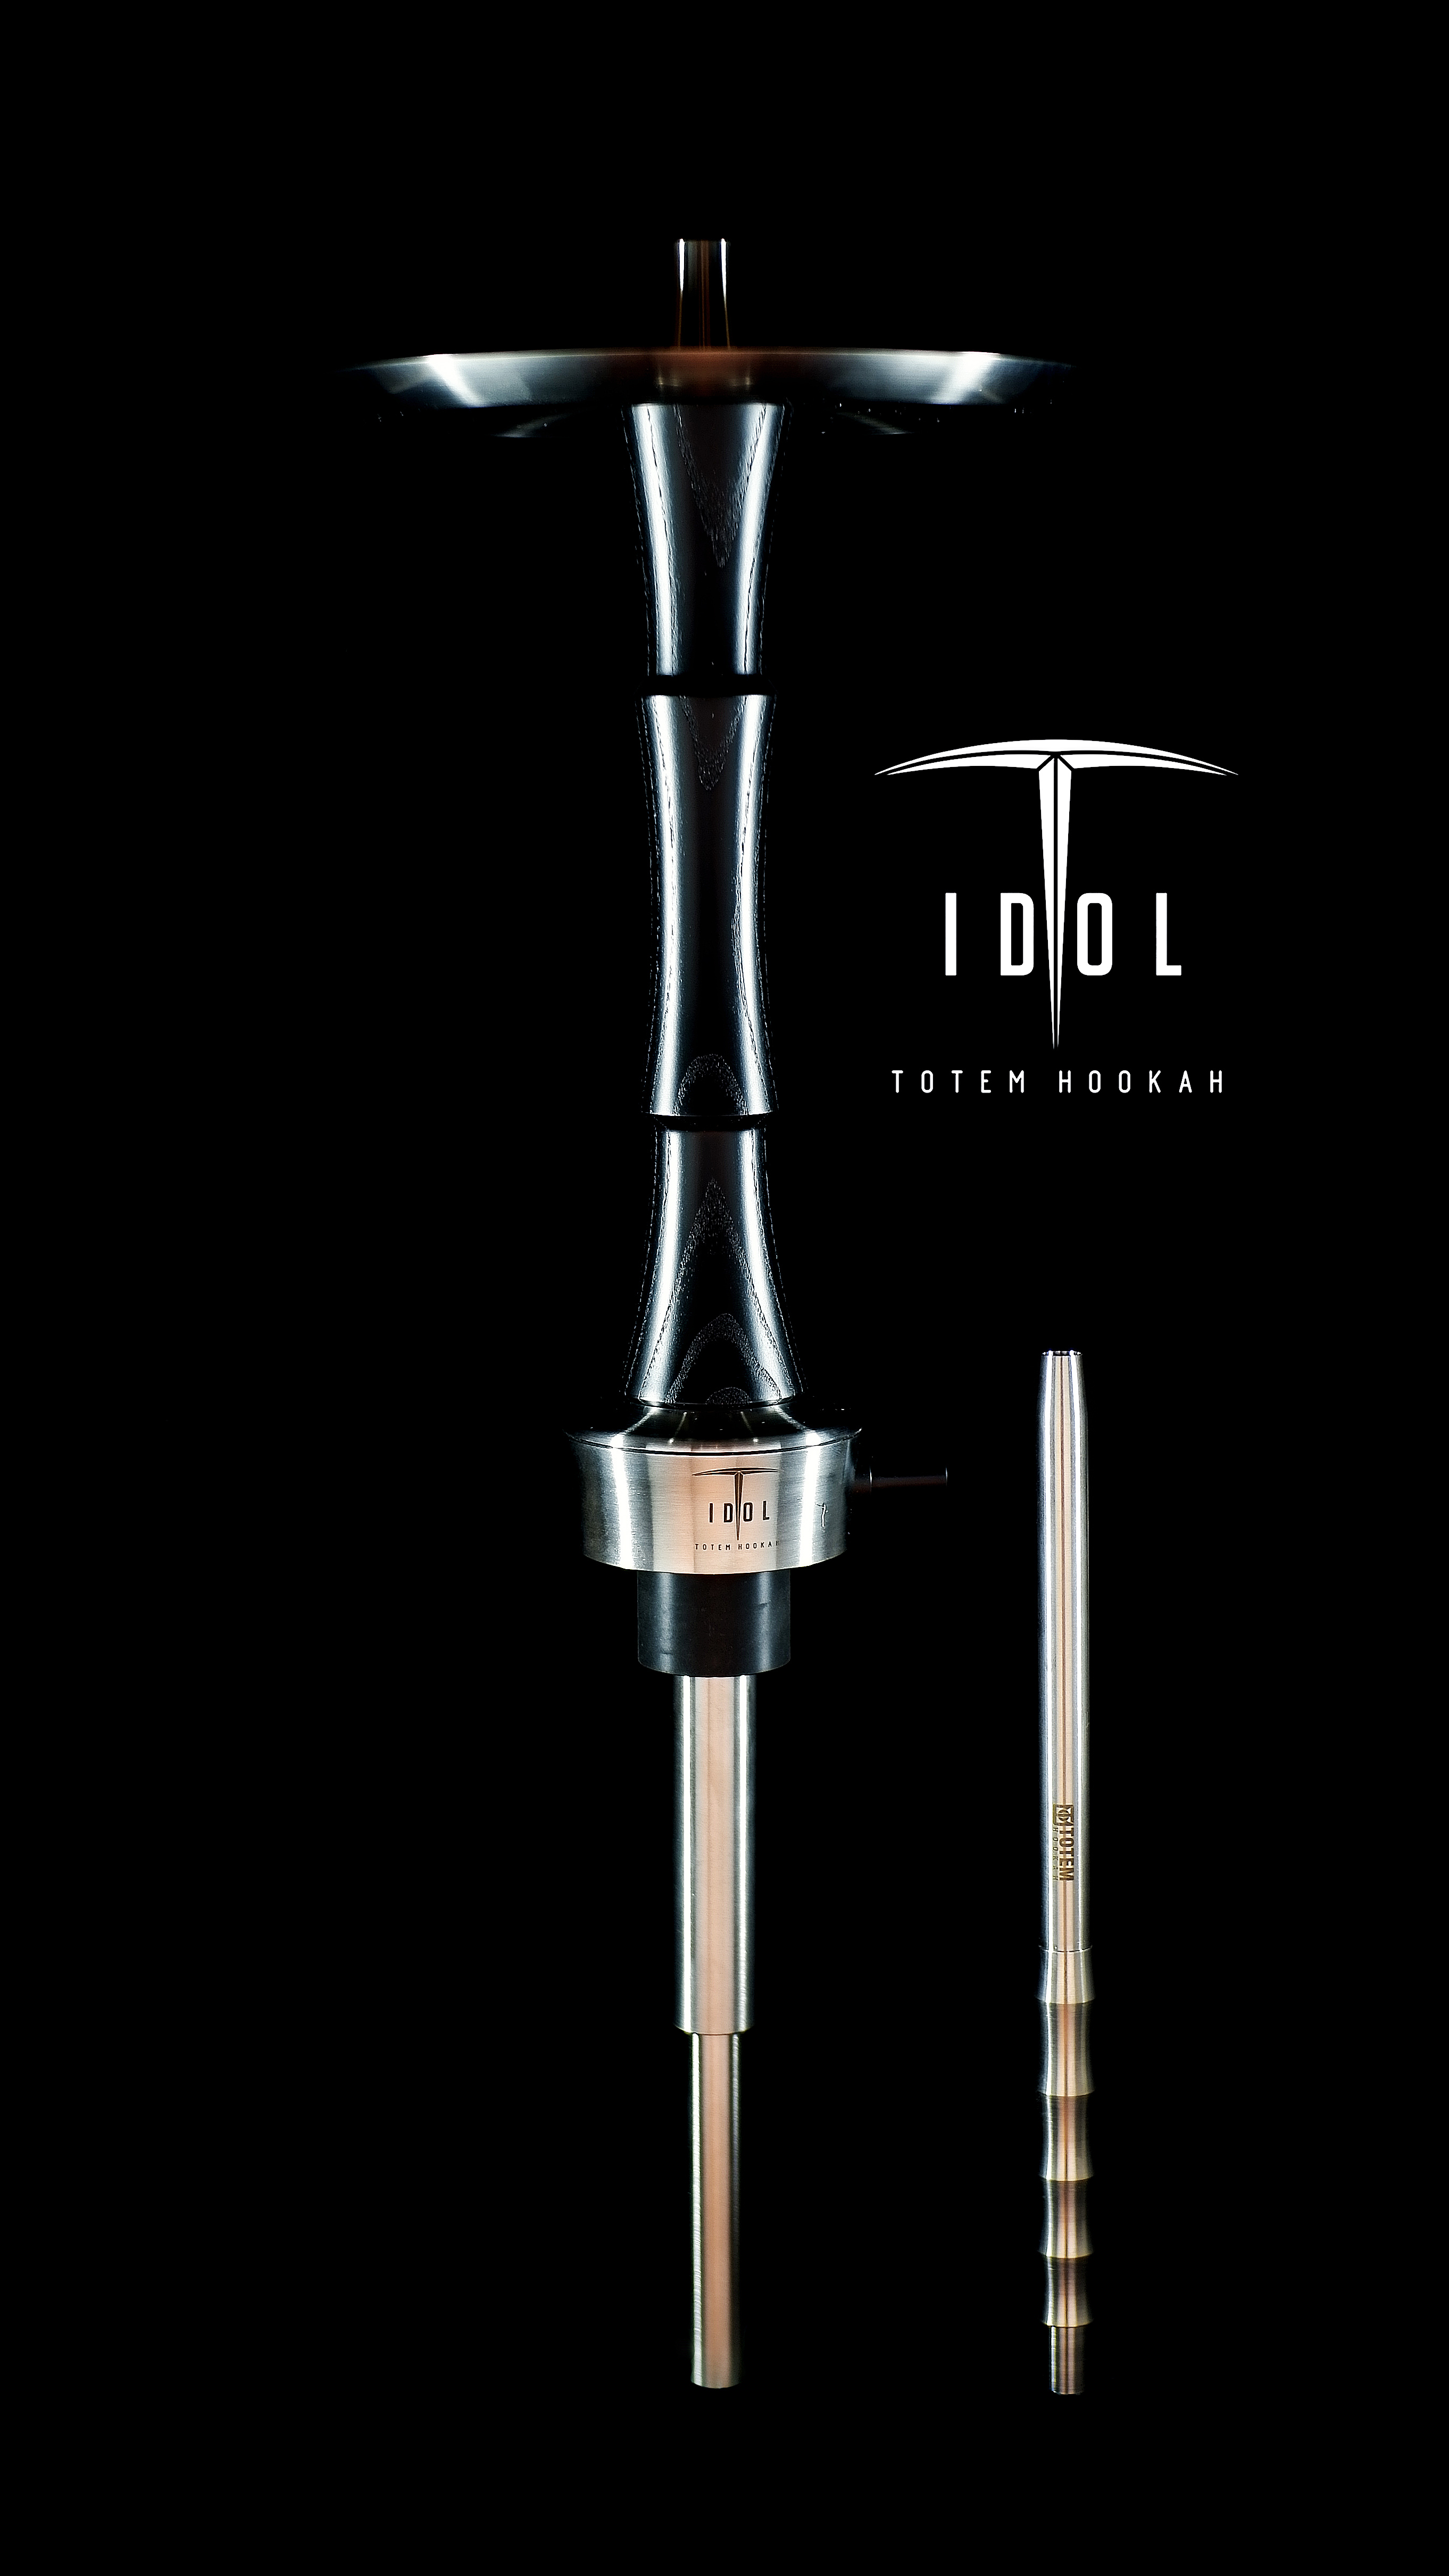 Totem Hookah Idol Full Black